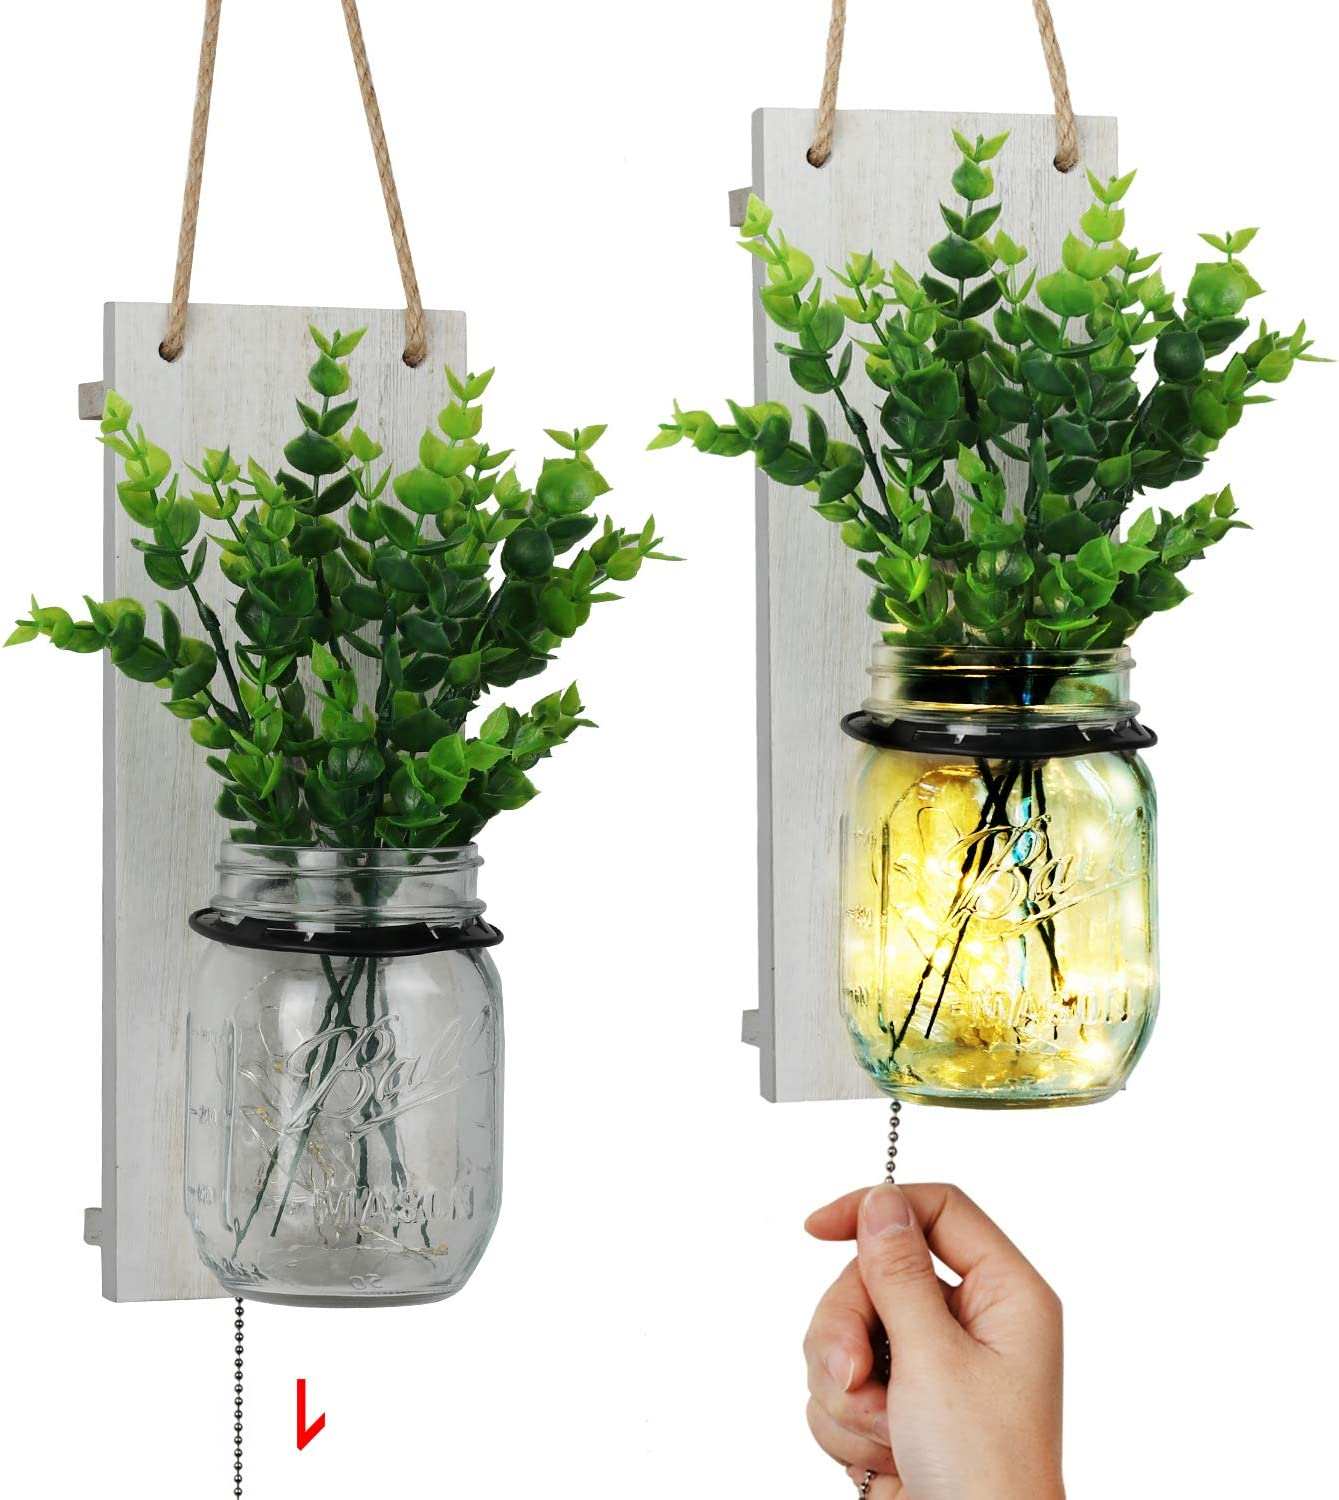 TJ.MOREE Mason Jar Sconce, Shabby Chic Wall Sconce Farmhouse Decor with Pull Chain Switch, Seasonal Interchangeable Green Fake Plant and LED Strip Lights Design for Home Decoration - White (Set of 2)